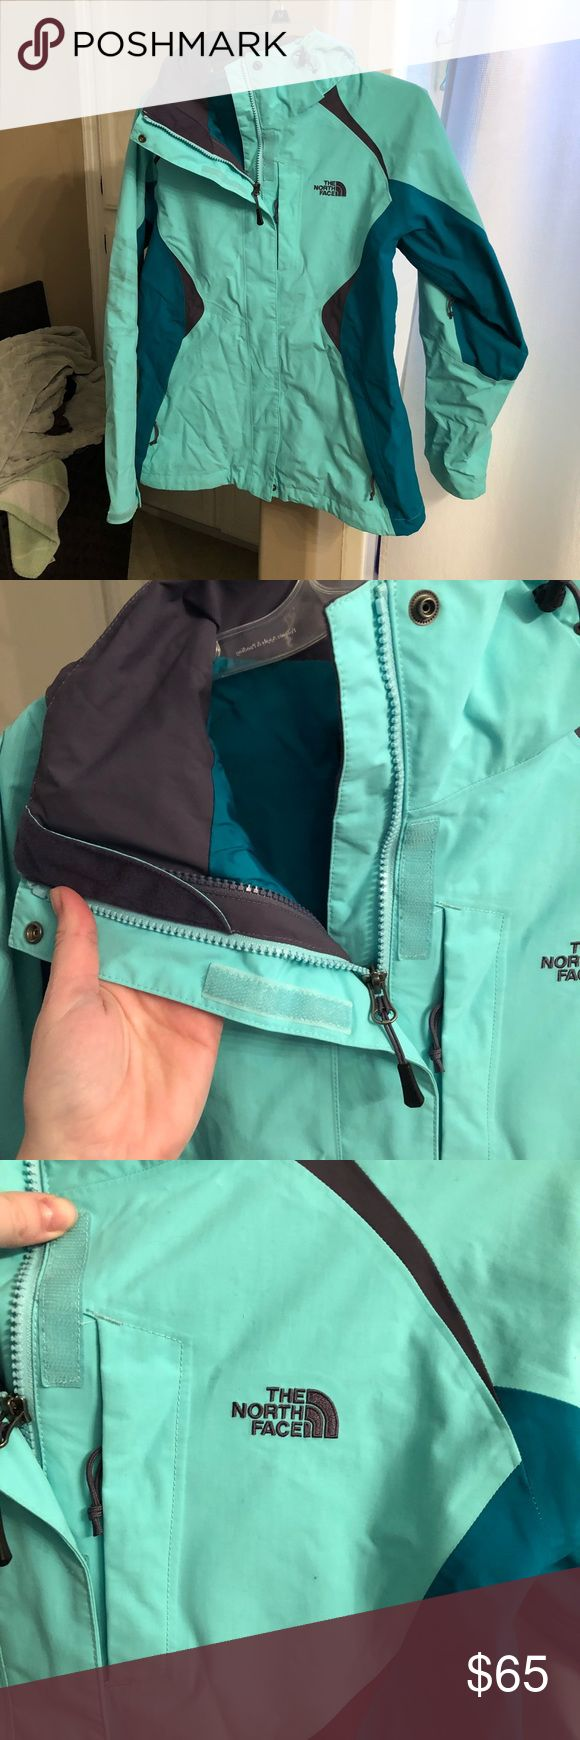 Womens North Face coat Womens size M North Face windbreaker coat with detachable hood Inside zippers to zip on a North Face fleece (see photos) Teal & dark purple color Long in the back & sleeves-good for snow One year old, worn once North Face Jackets & Coats